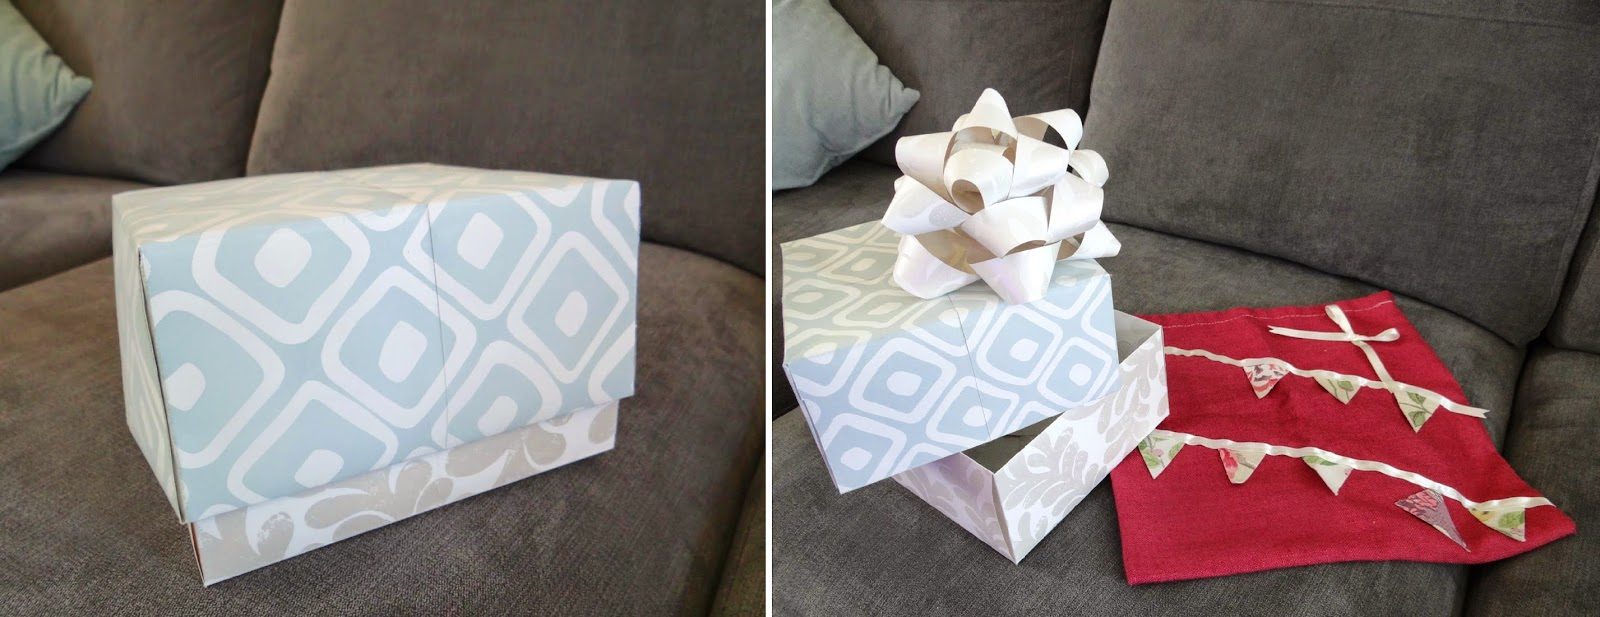 Laura Ashley, Christmas Gift Wrapping Ideas, Christmas Crafts